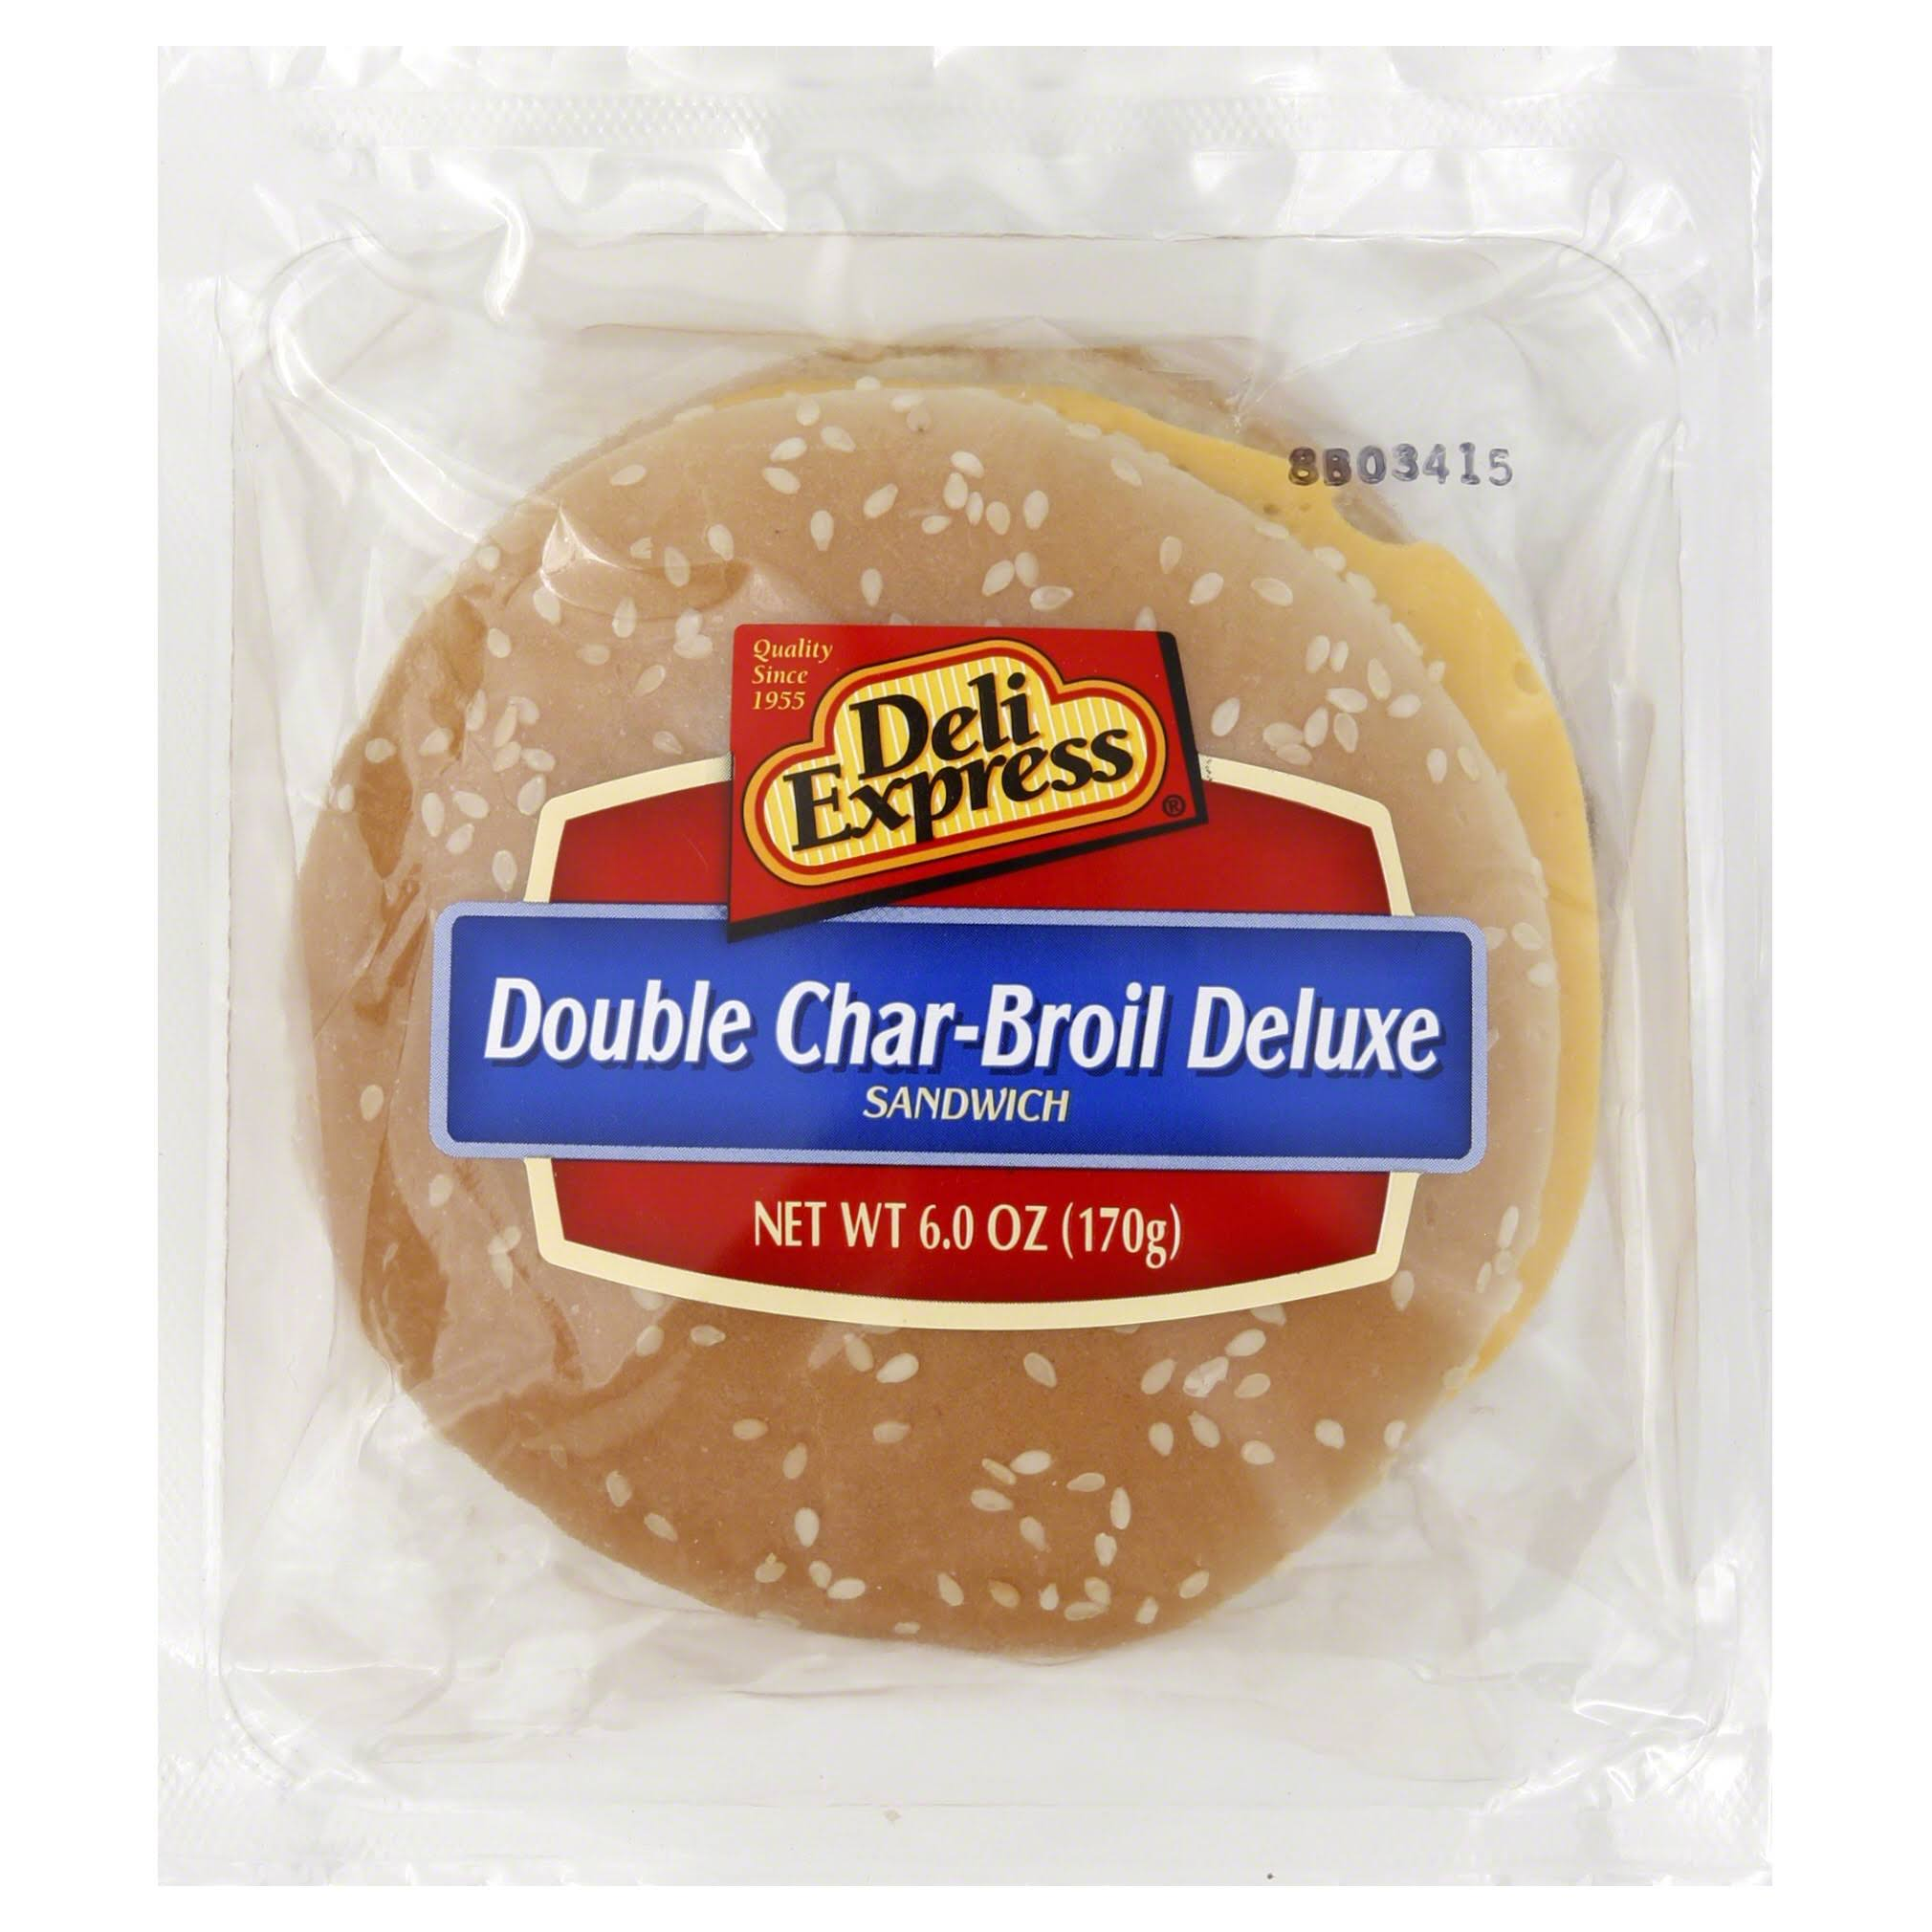 Deli Express Sandwich, Double Char-Broil Deluxe - 6 oz